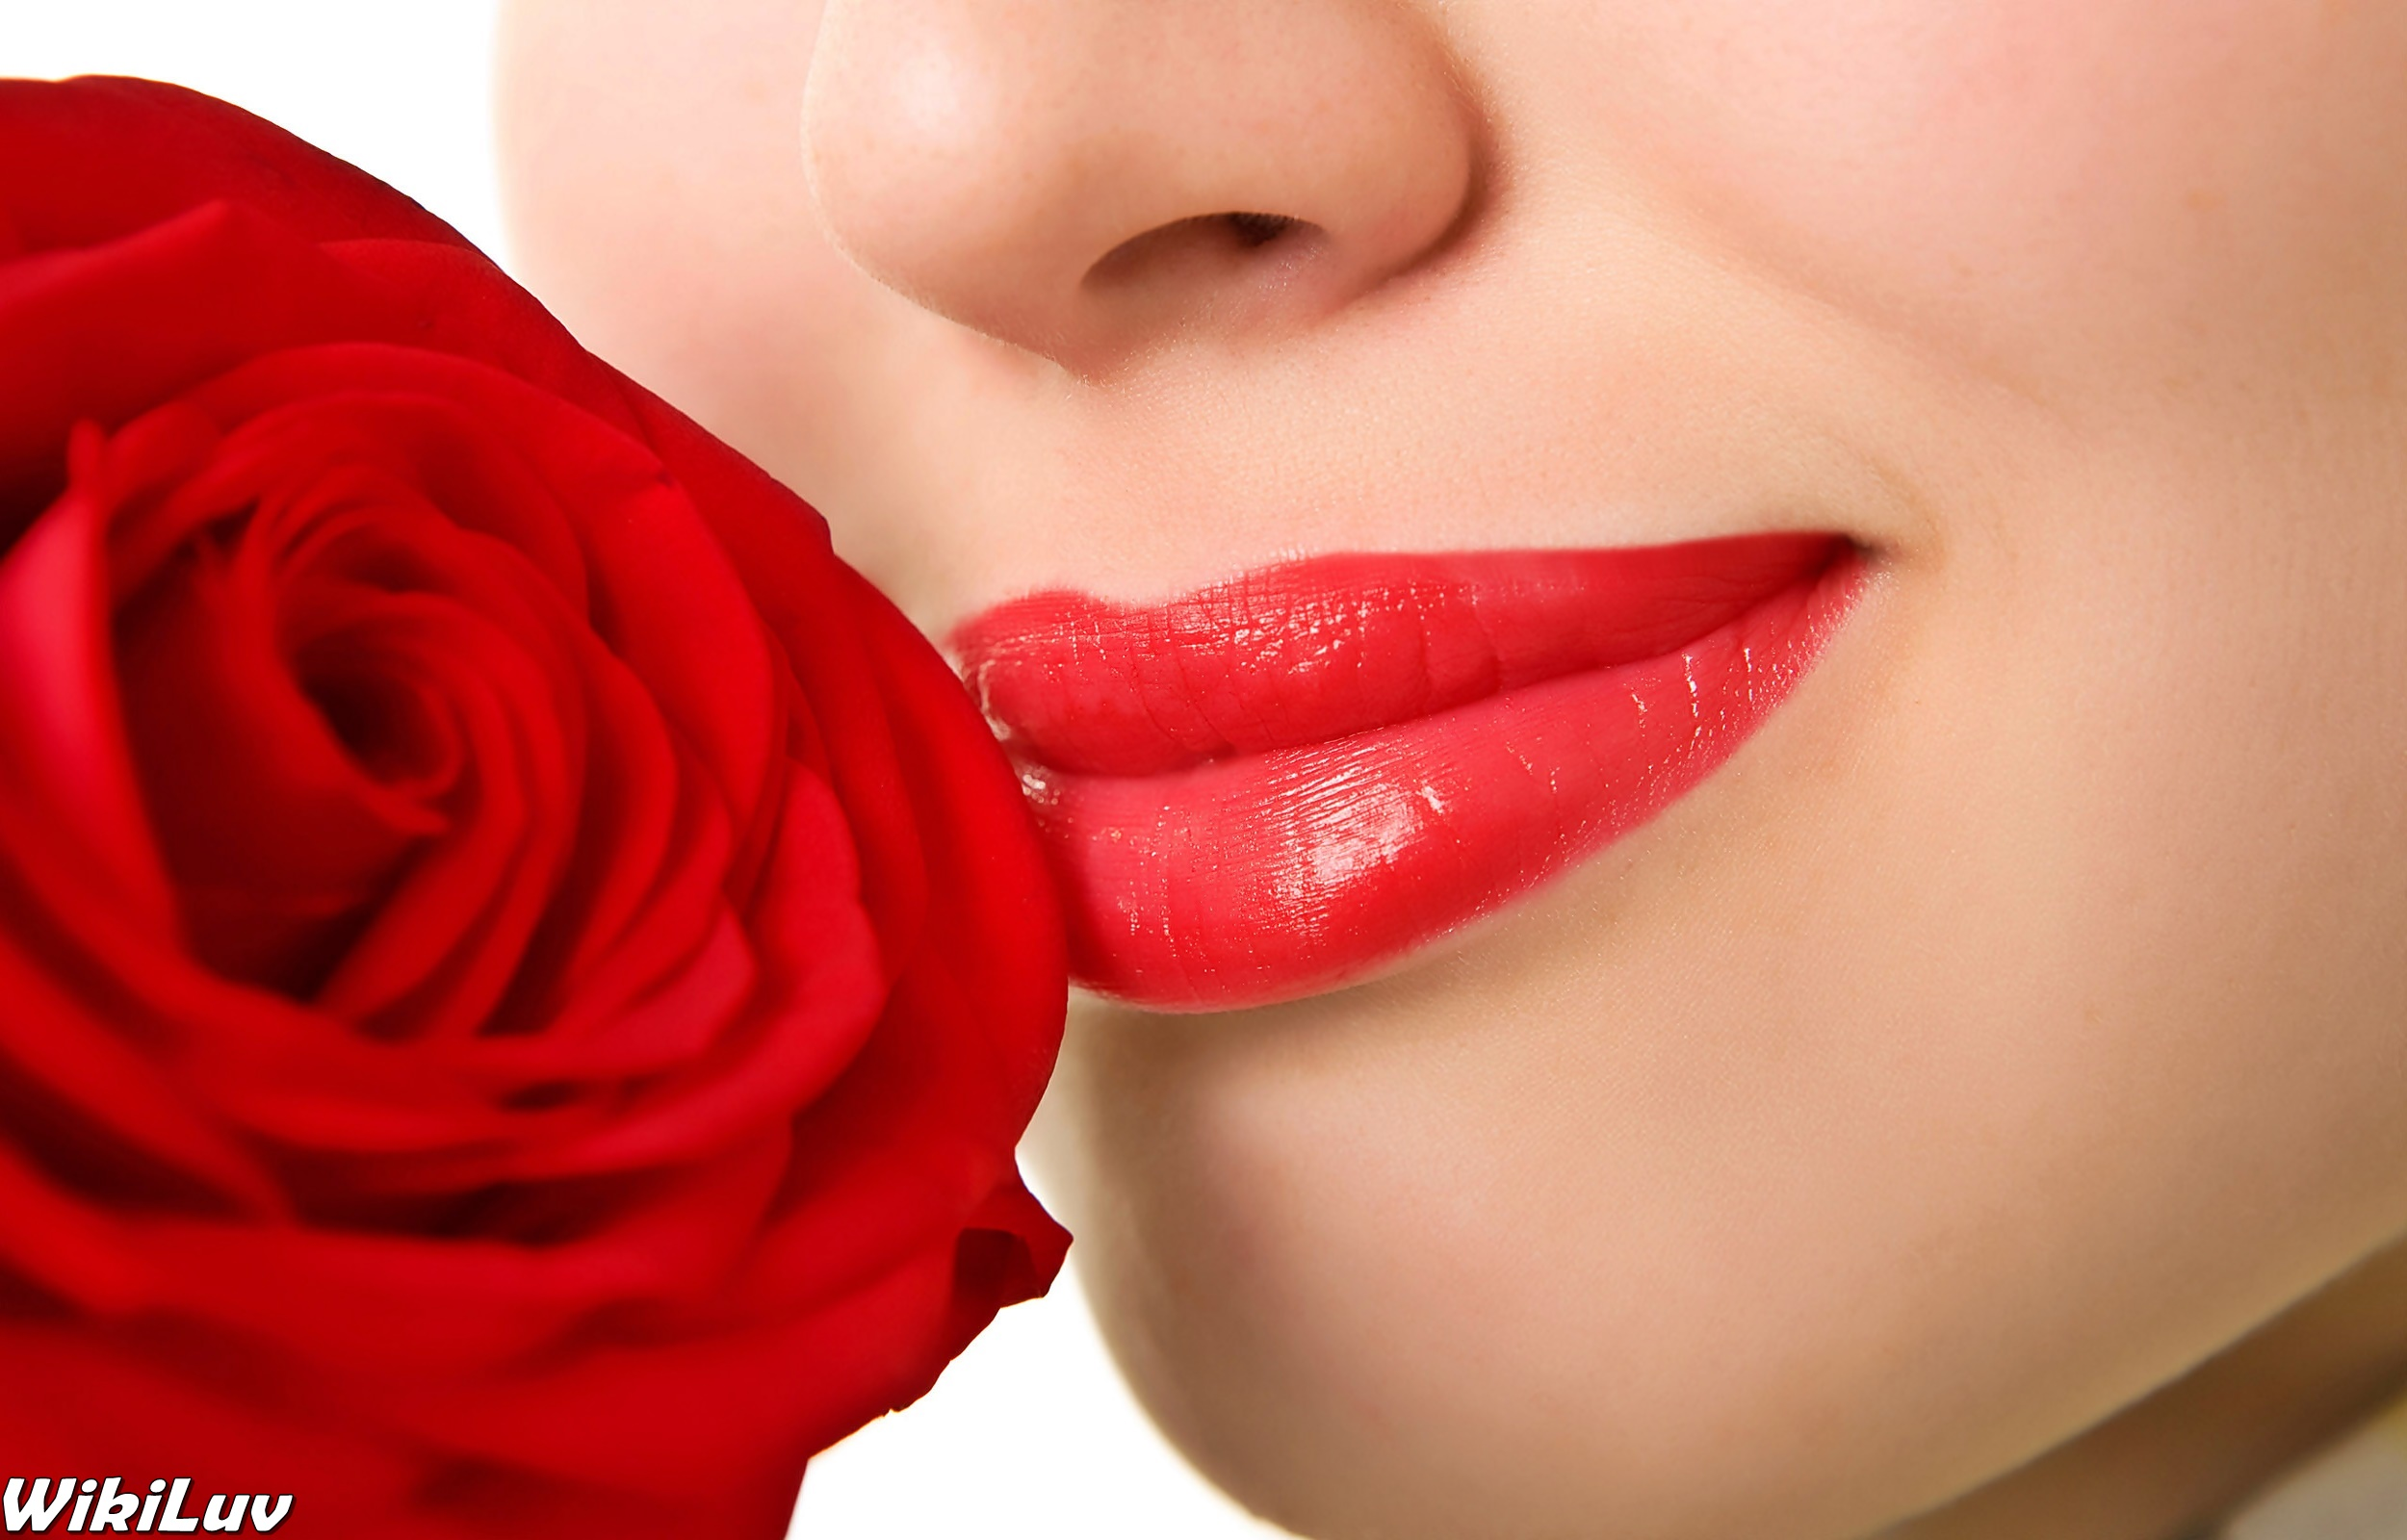 How To Lighten Dark Lips Naturally: Top 5 Home Remedies